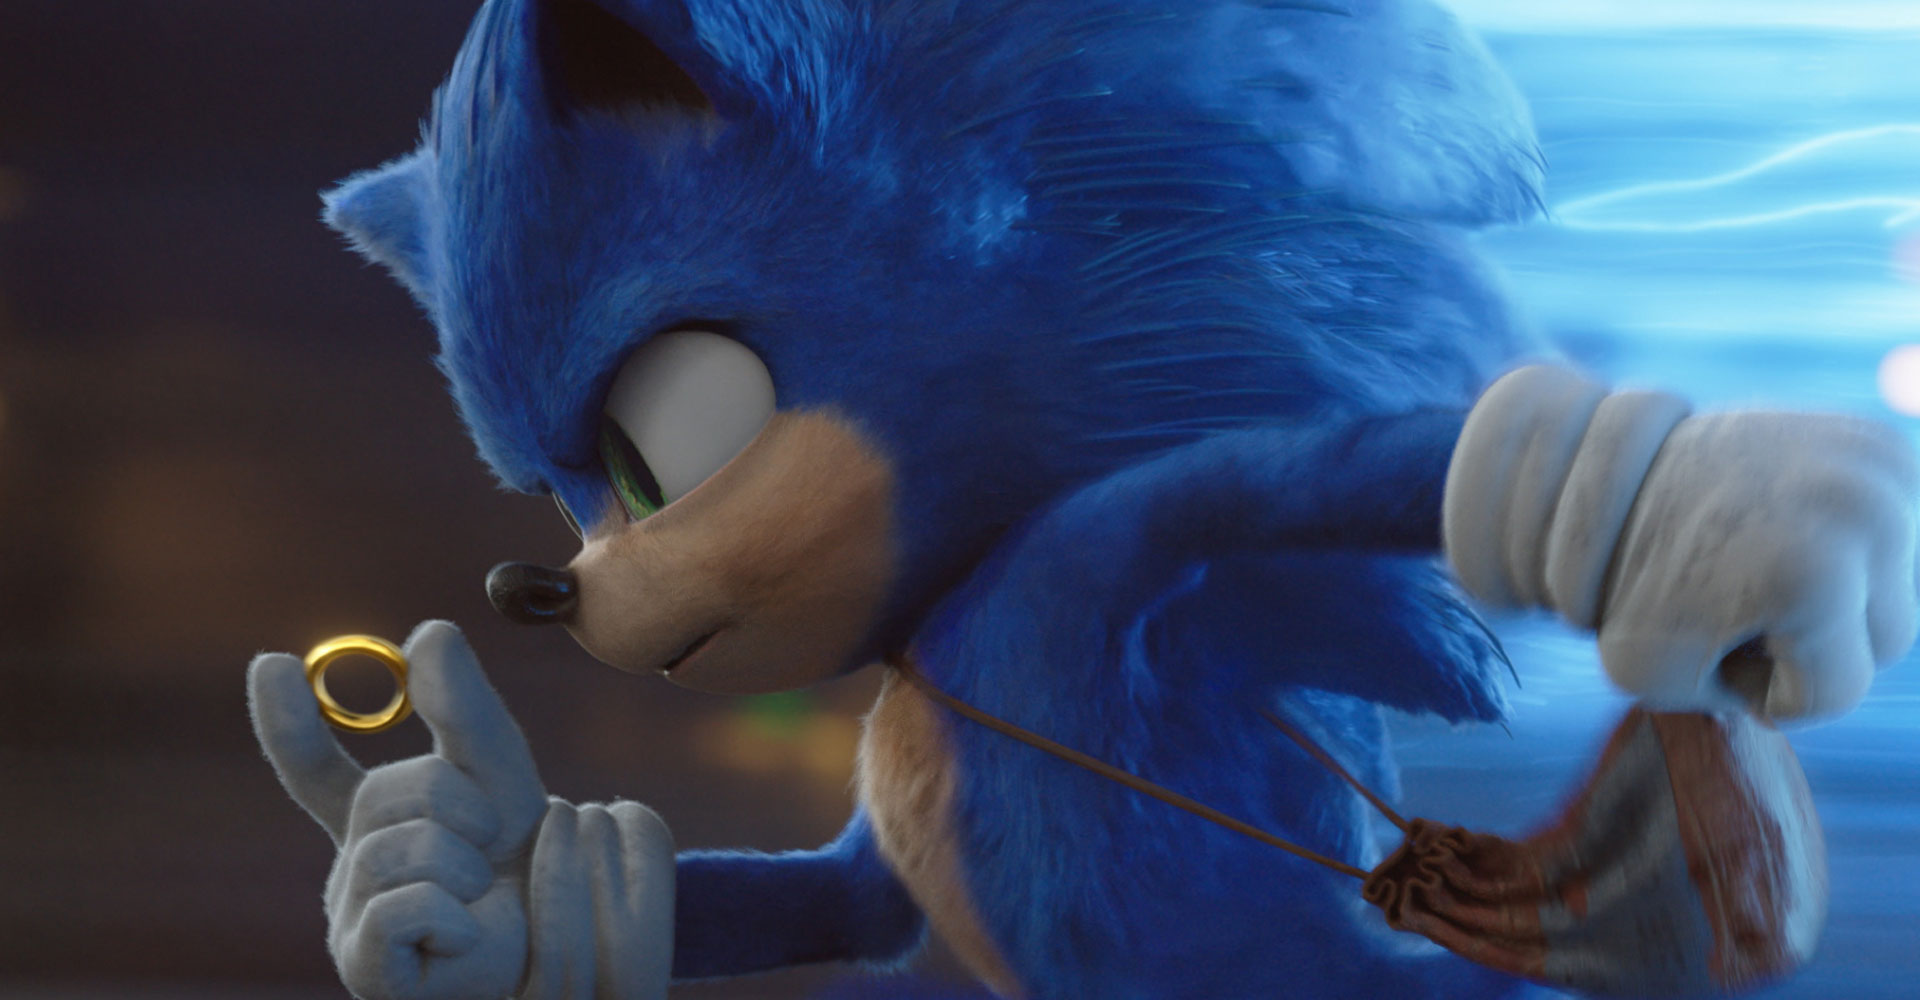 Bild von Sonic the Hedgehog.